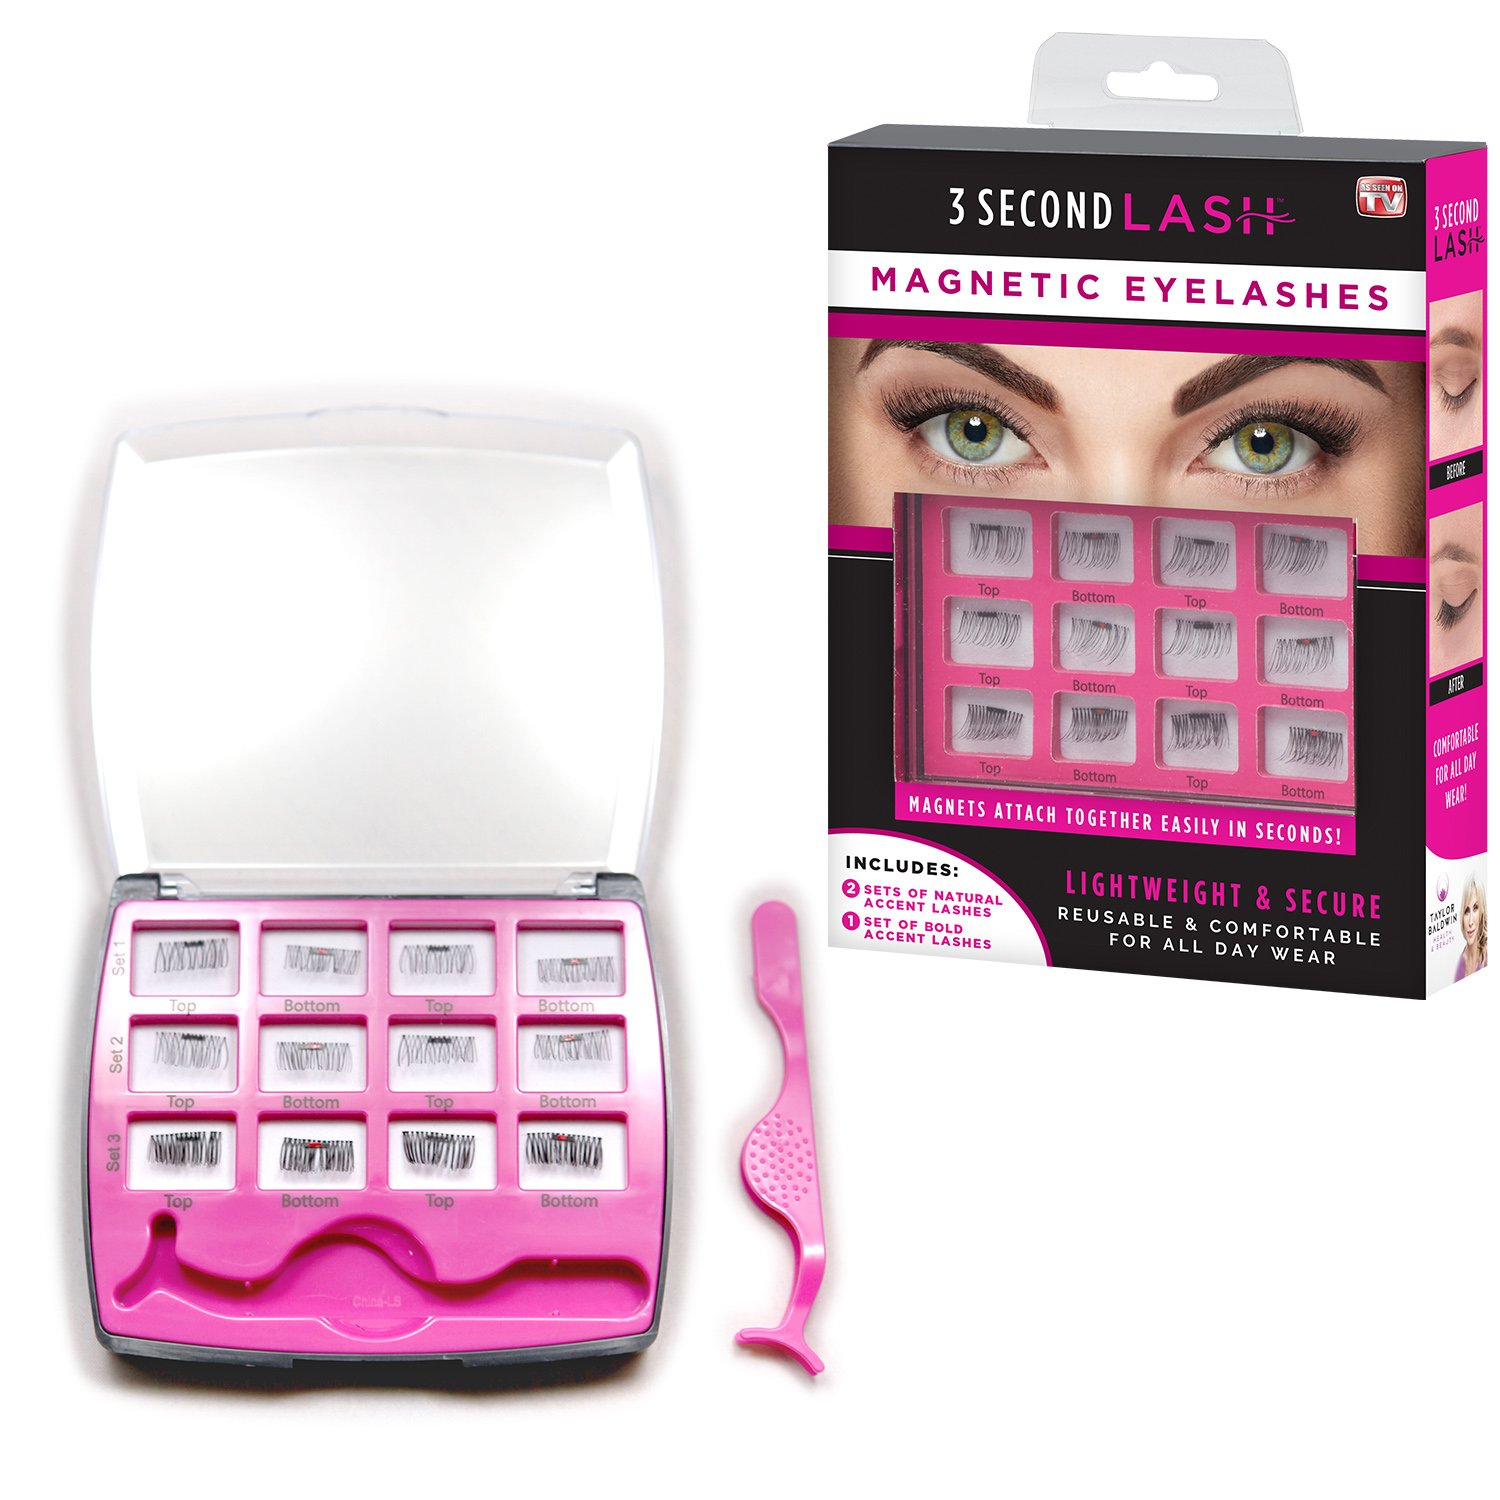 1408176ad1d Amazon.com : Allstar Innovations - 3 Second Lash Magnetic Eyelash Accents,  Includes 2 Natural, 1 Bold Set of Lashes, As Seen on TV : Beauty